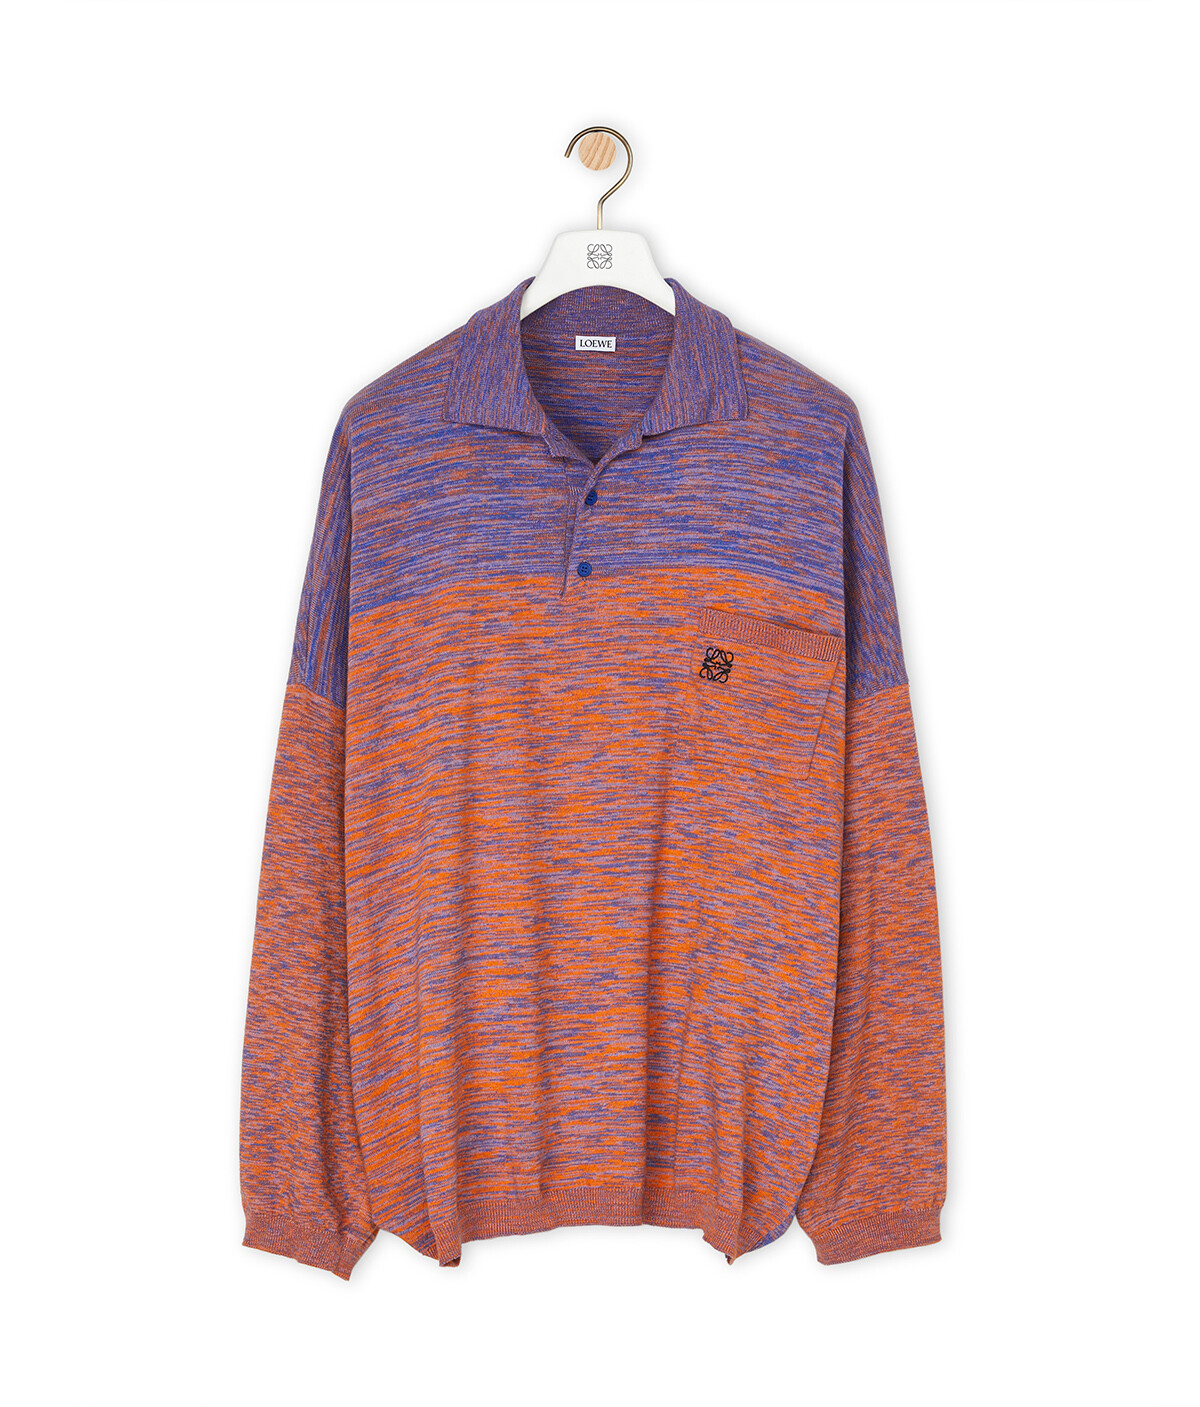 LOEWE Melange Ov Poloneck Sweater Purple/Orange front